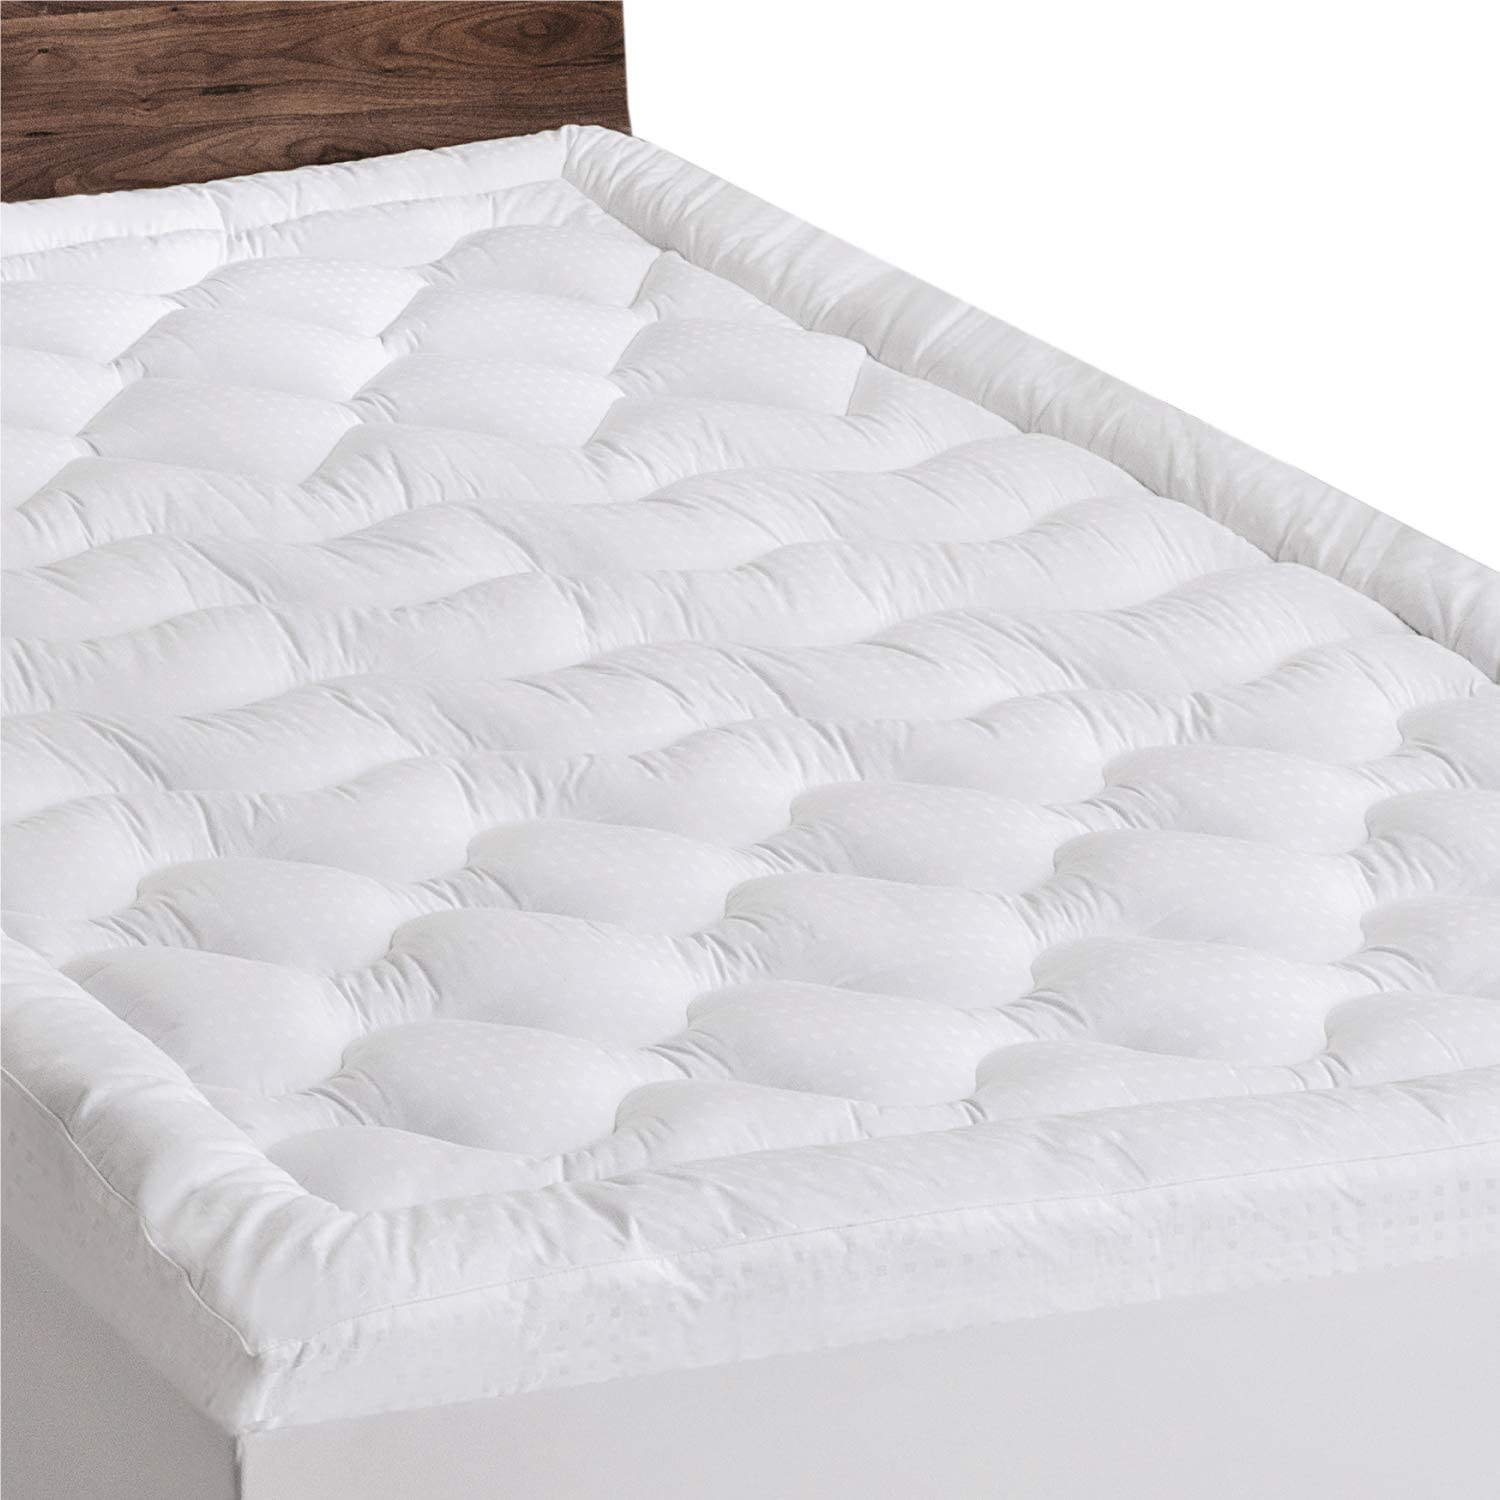 Queen Size Mattress Pad Soft Plush Fitted Pillow Top Bed Topper Protector Cover